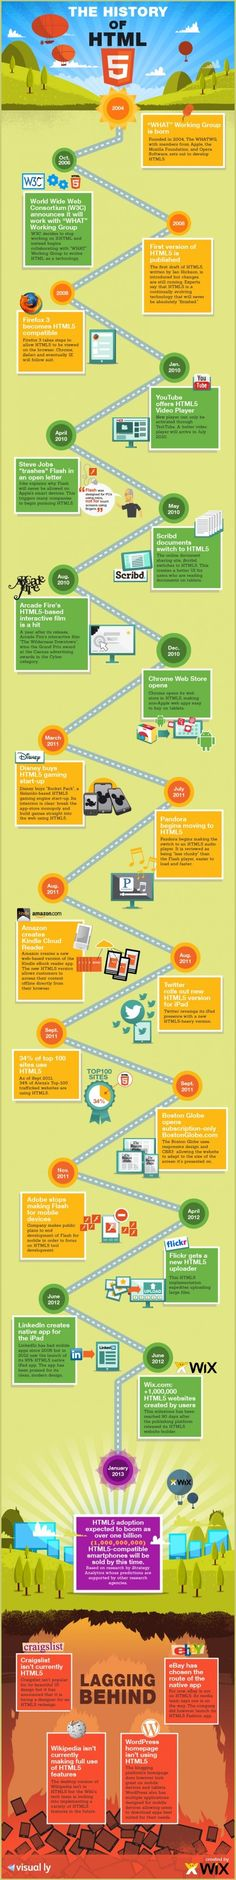 The History of HTML5 [Infographic]